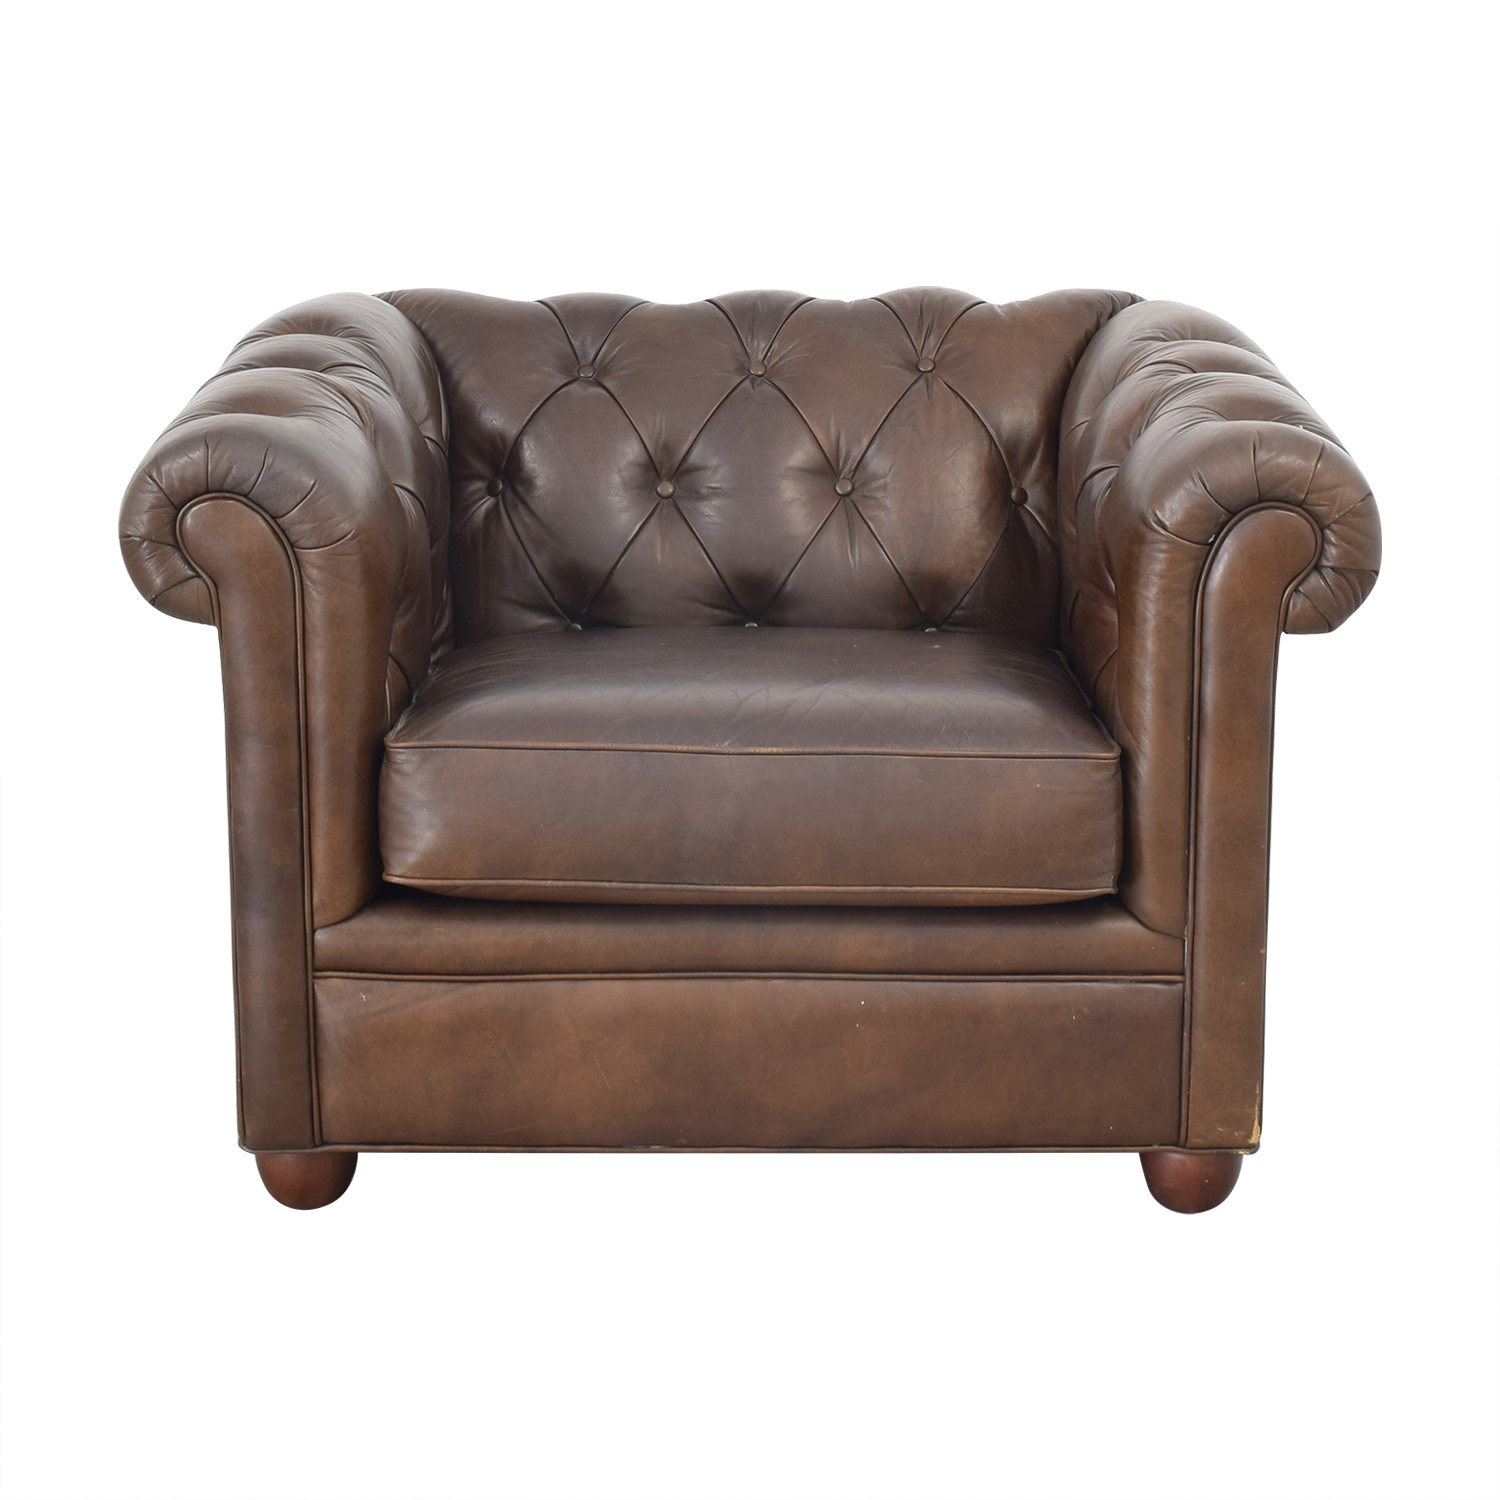 buy Pottery Barn Chesterfield Armchair Pottery Barn Accent Chairs